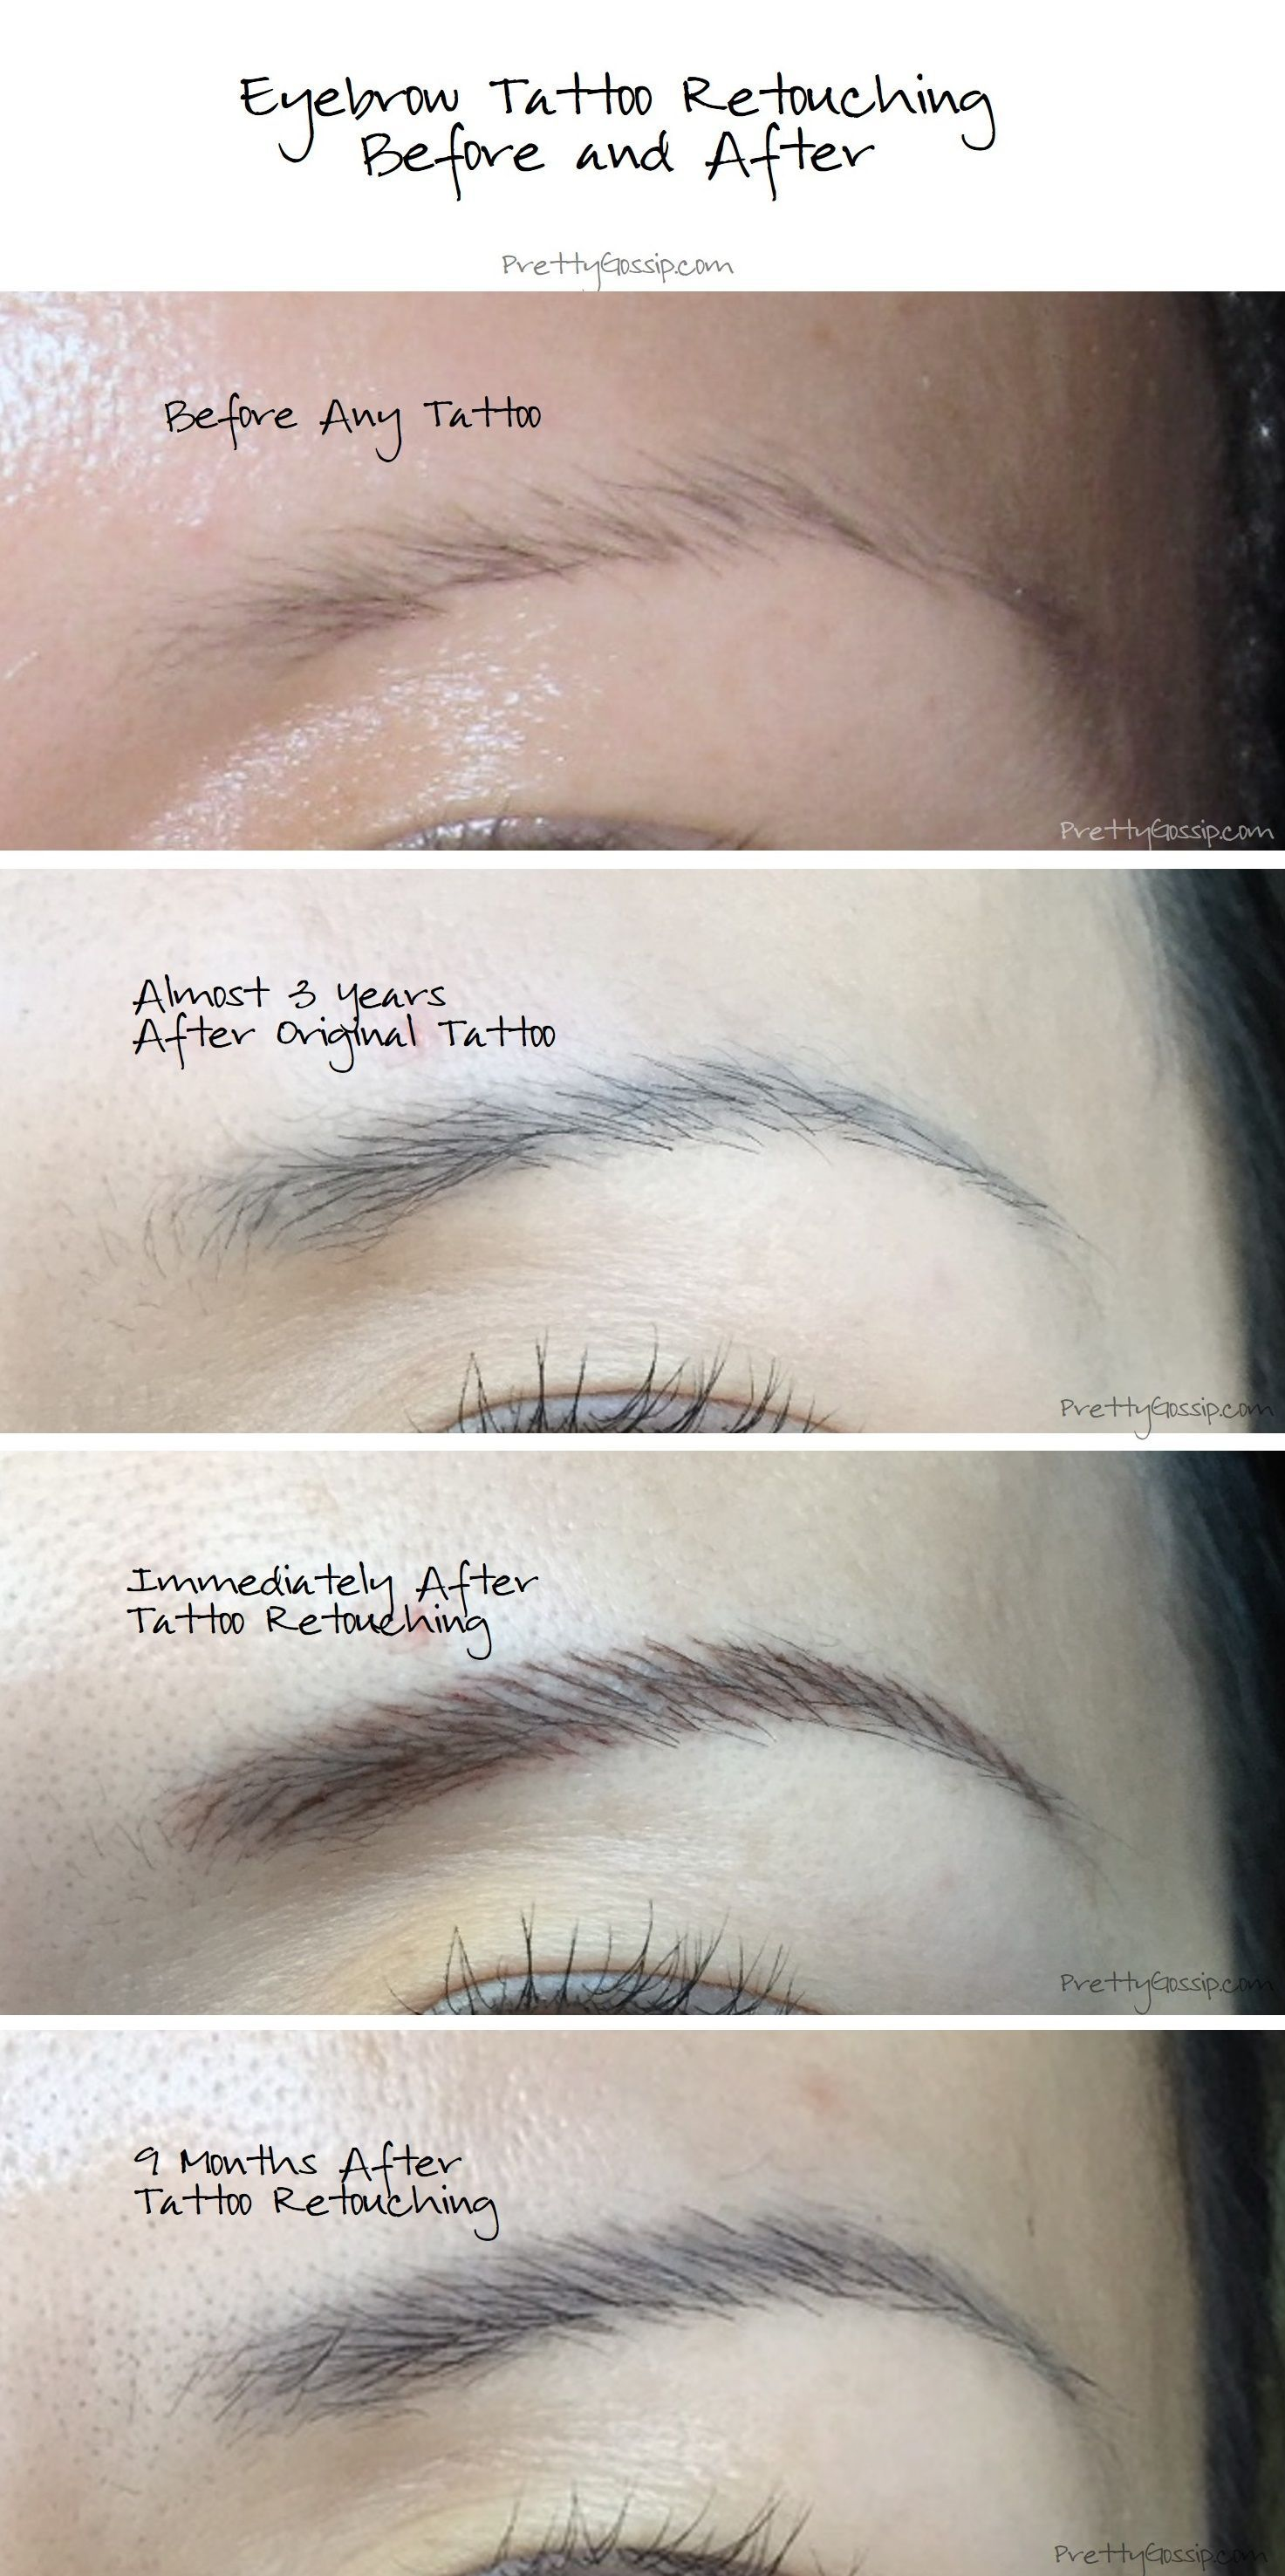 My Eyebrow Tattoo Journey A Must Read Before Getting Any Makeup